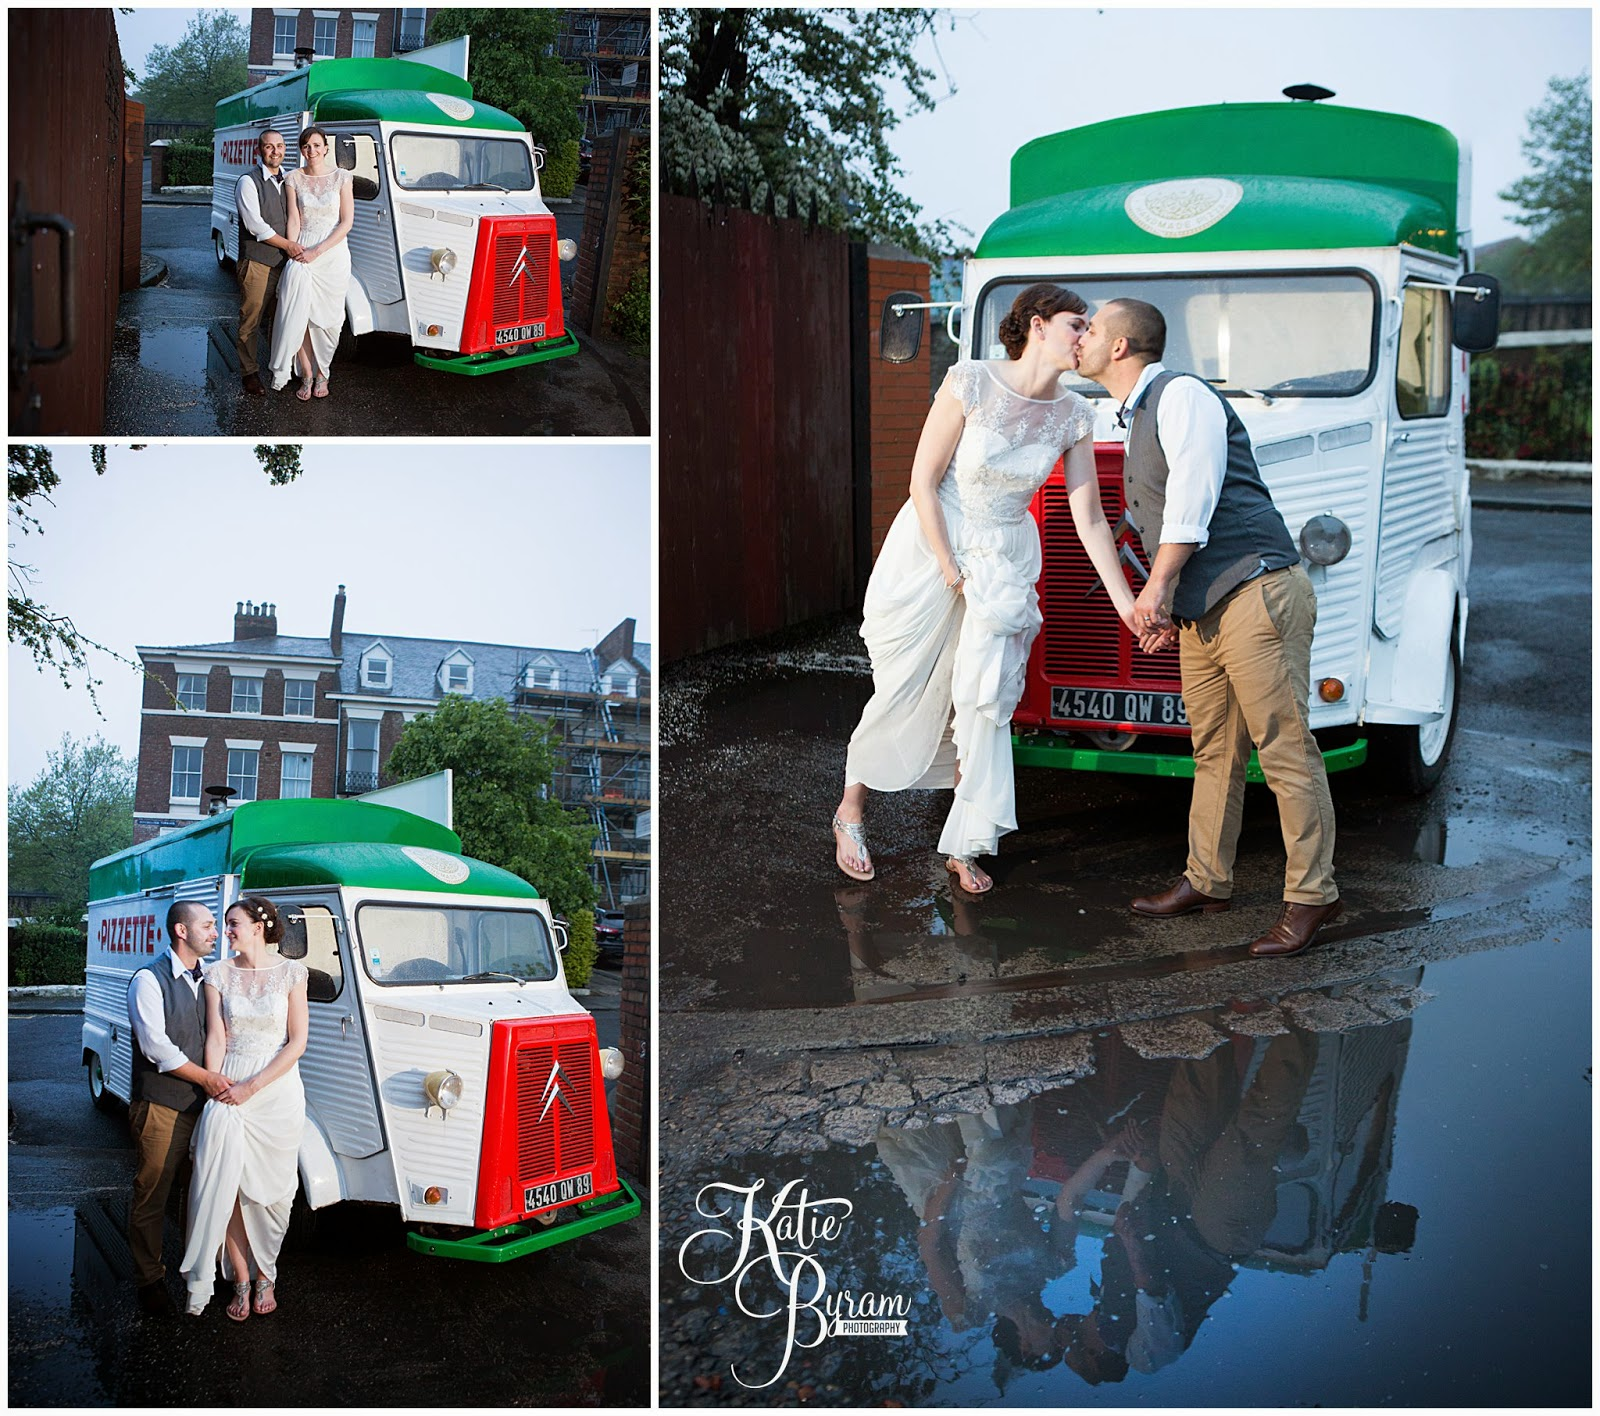 pizzette pizza van, stonebaked pizza, summerhill bowling green, quayside wedding, newcastle wedding, no ordinary florist, vintage wedding, diy wedding, katie byram photography